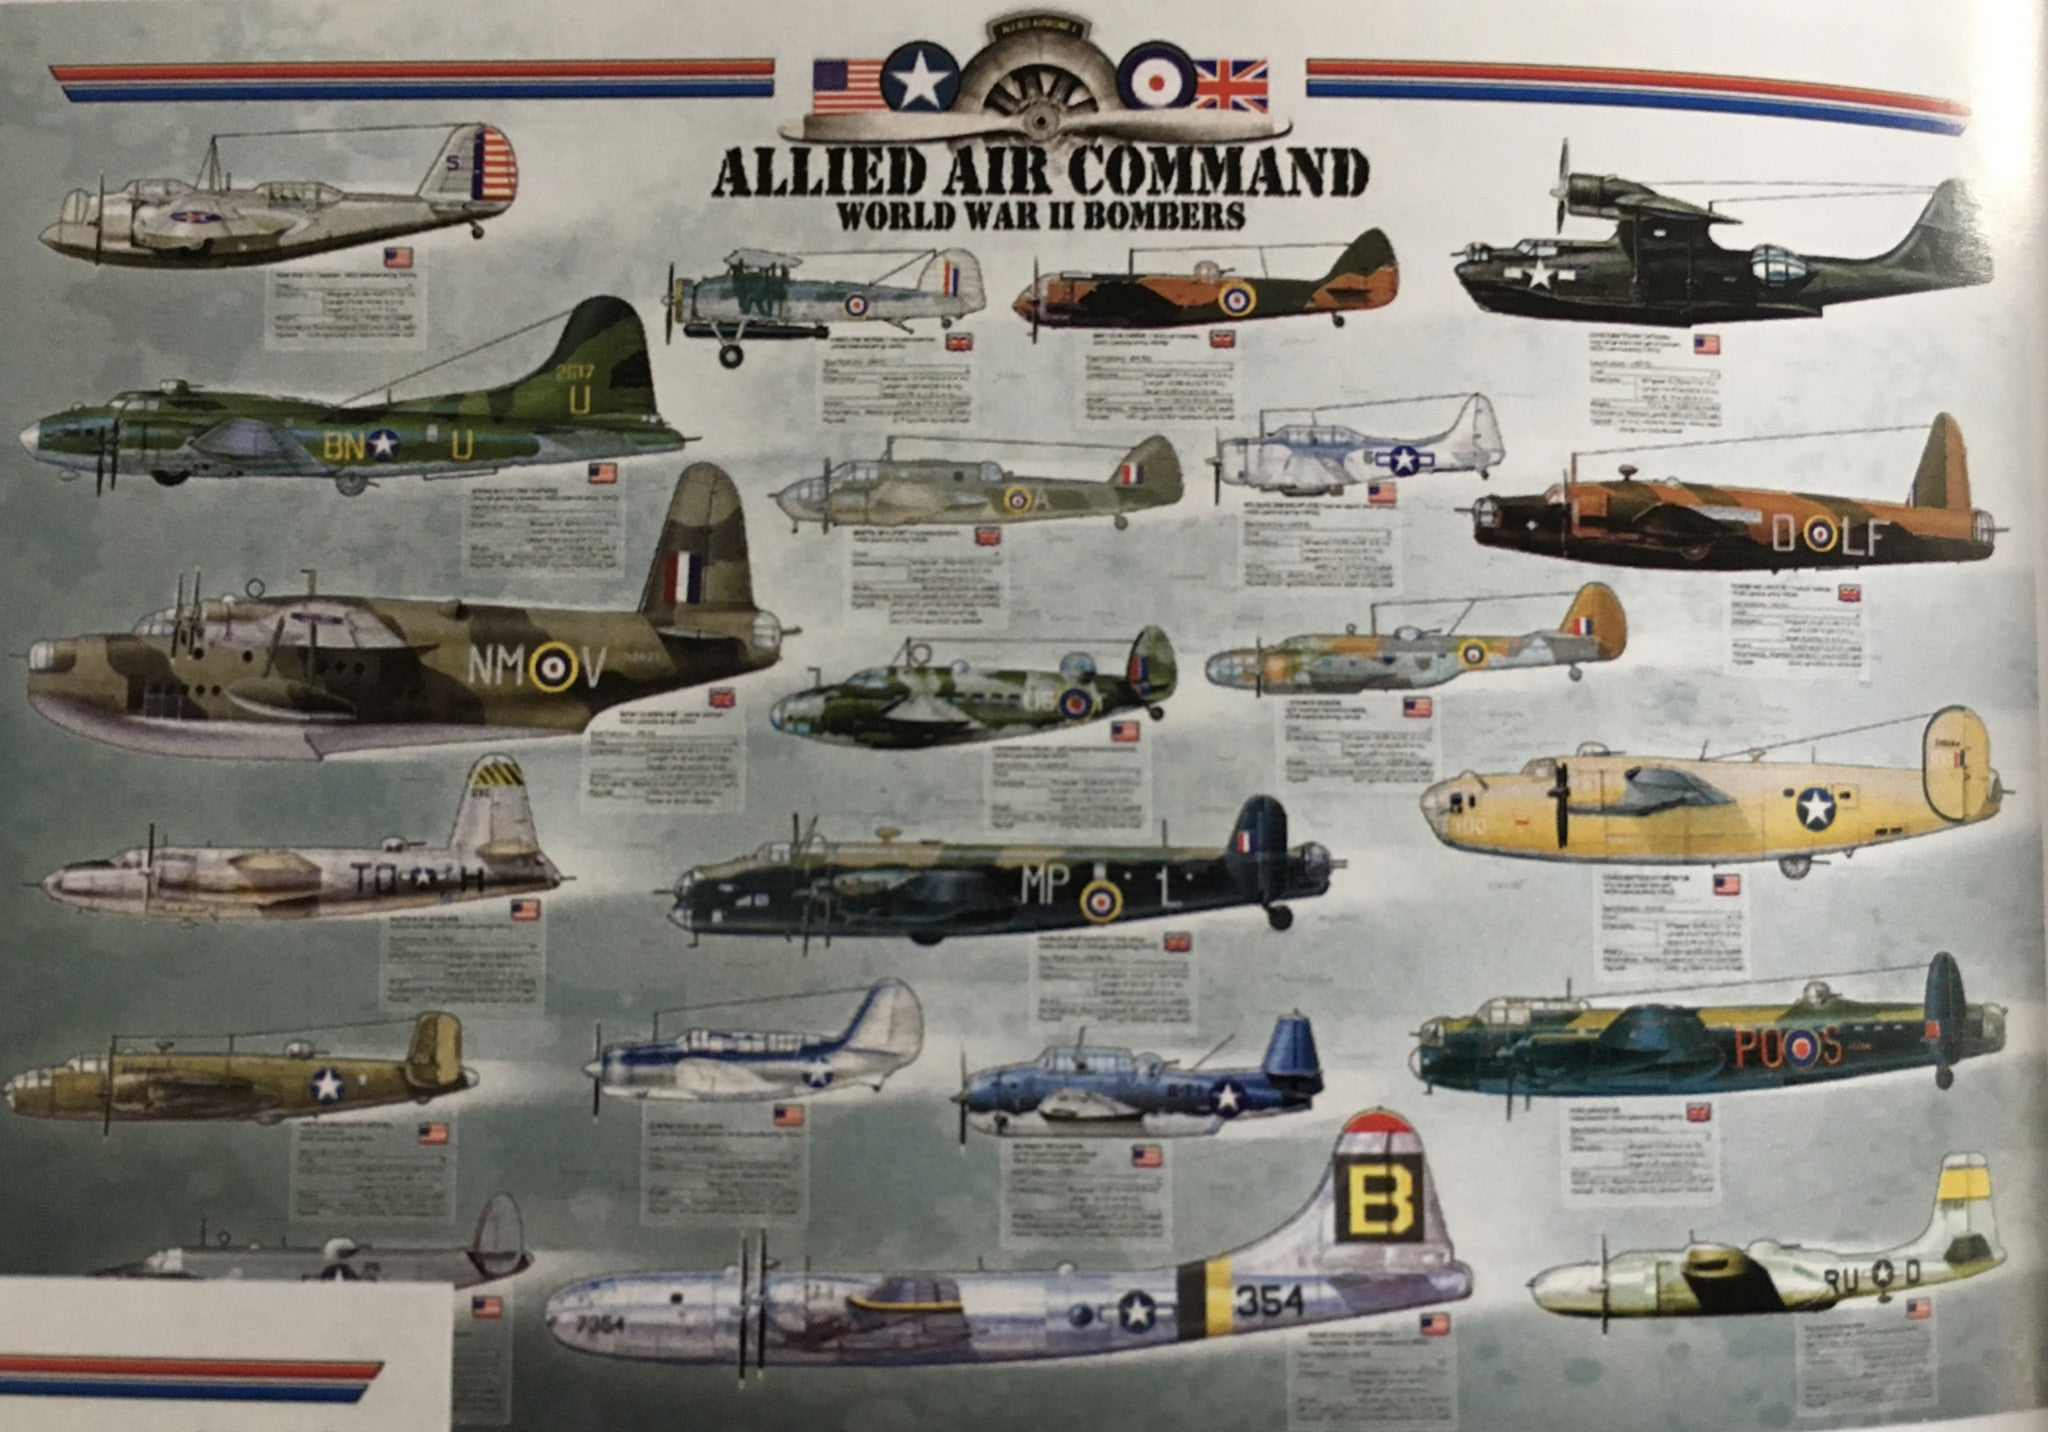 Allied Air Command Bomber Poster